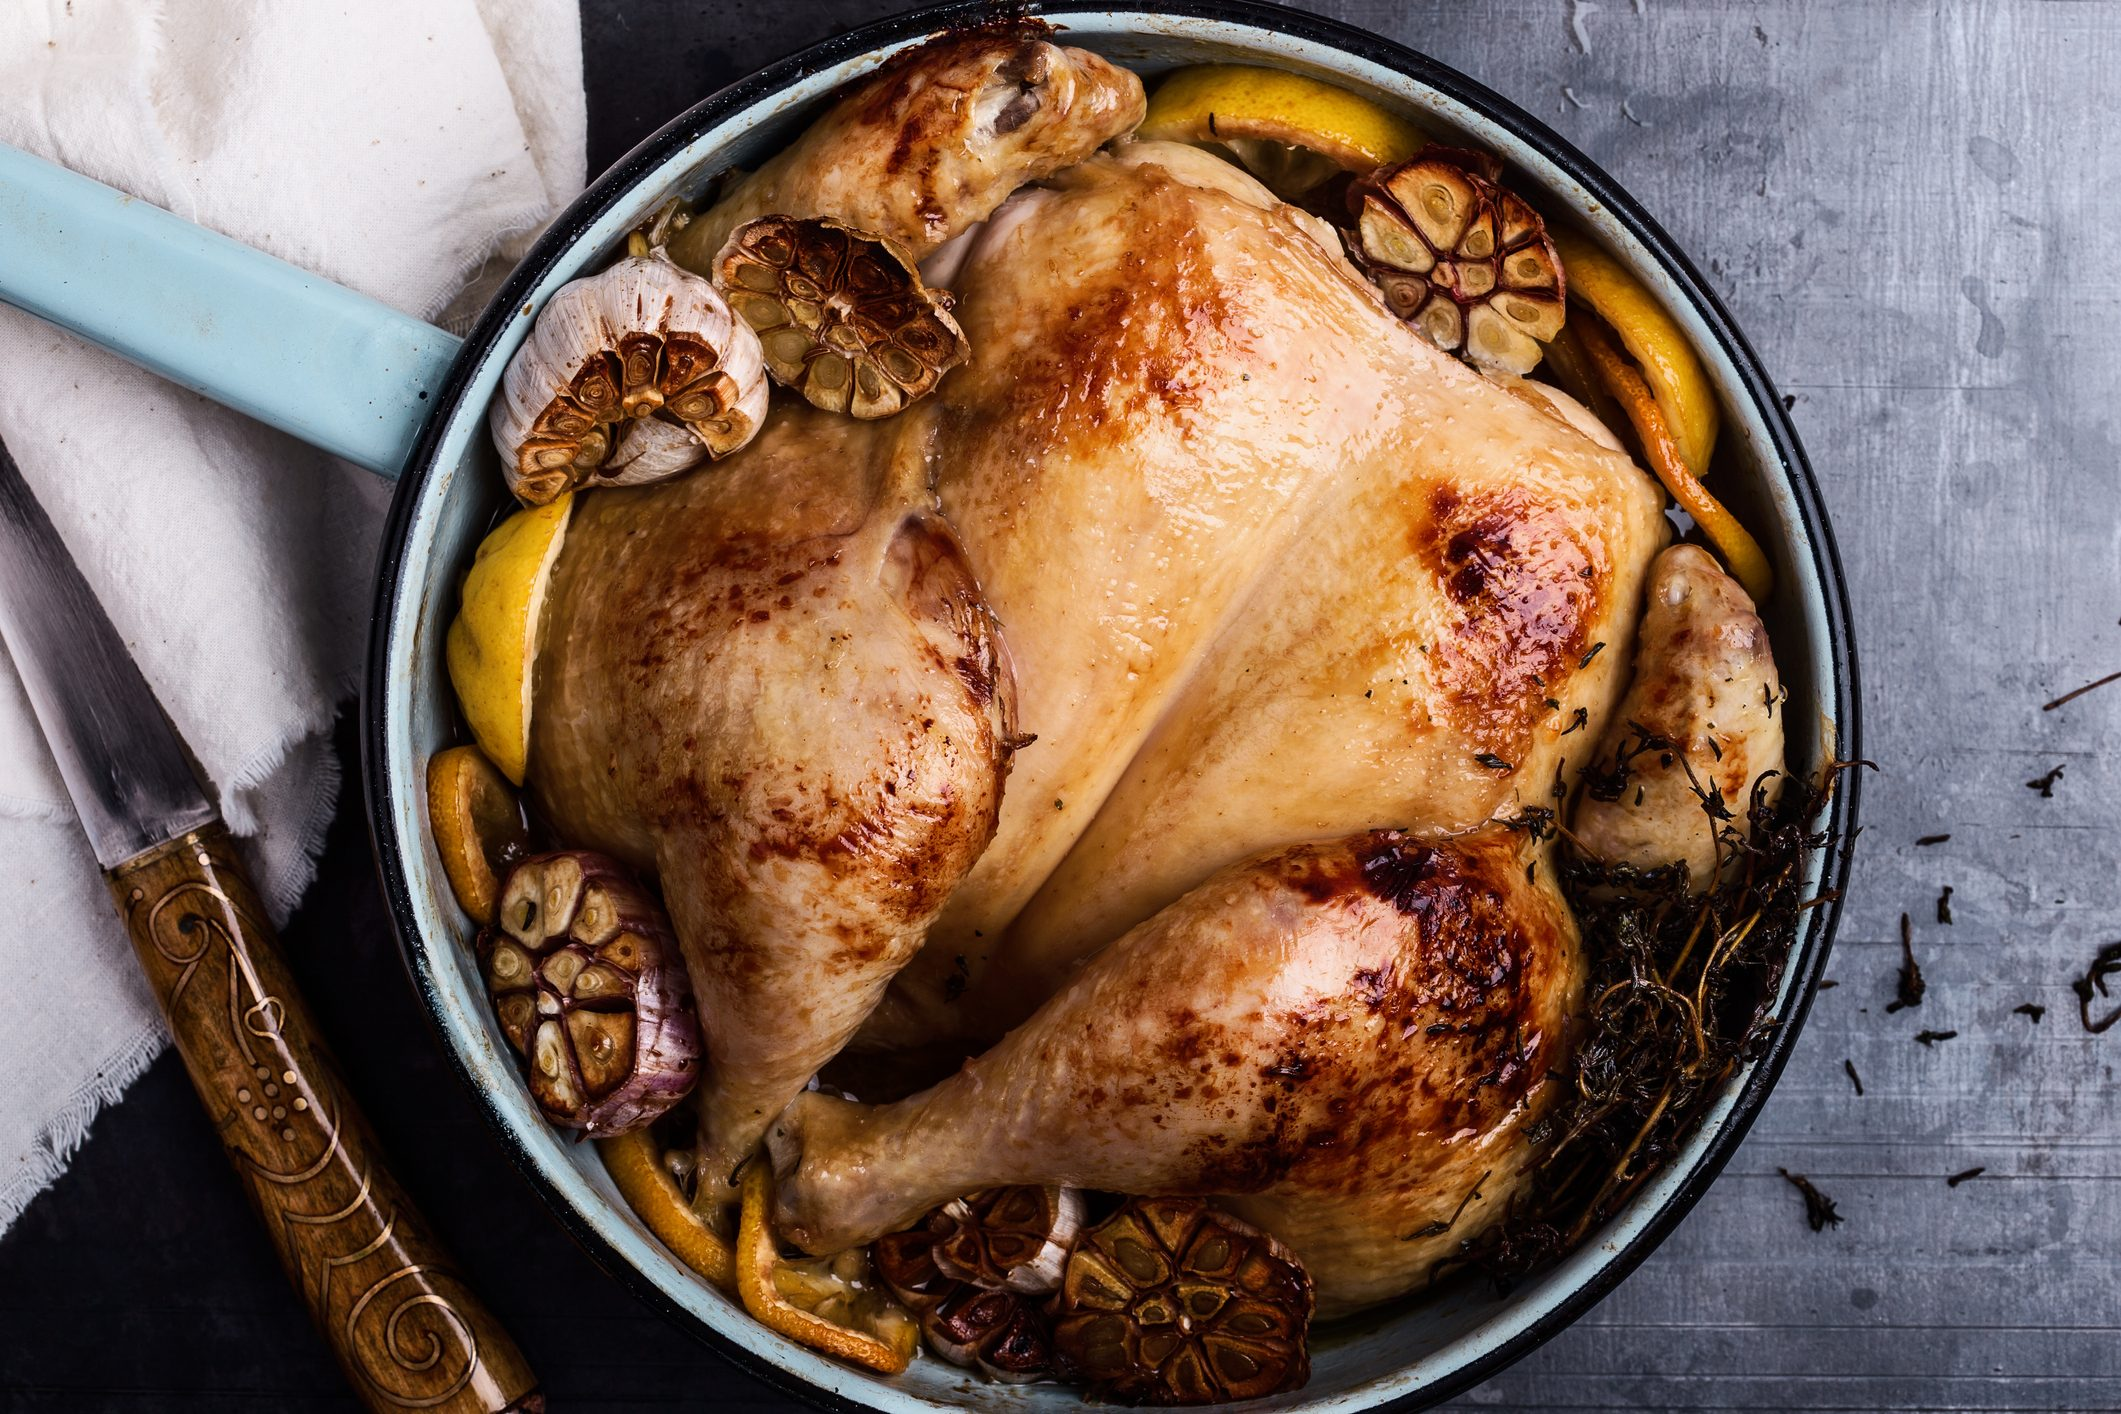 Homemade roasted chicken with spices, thyme and lemon